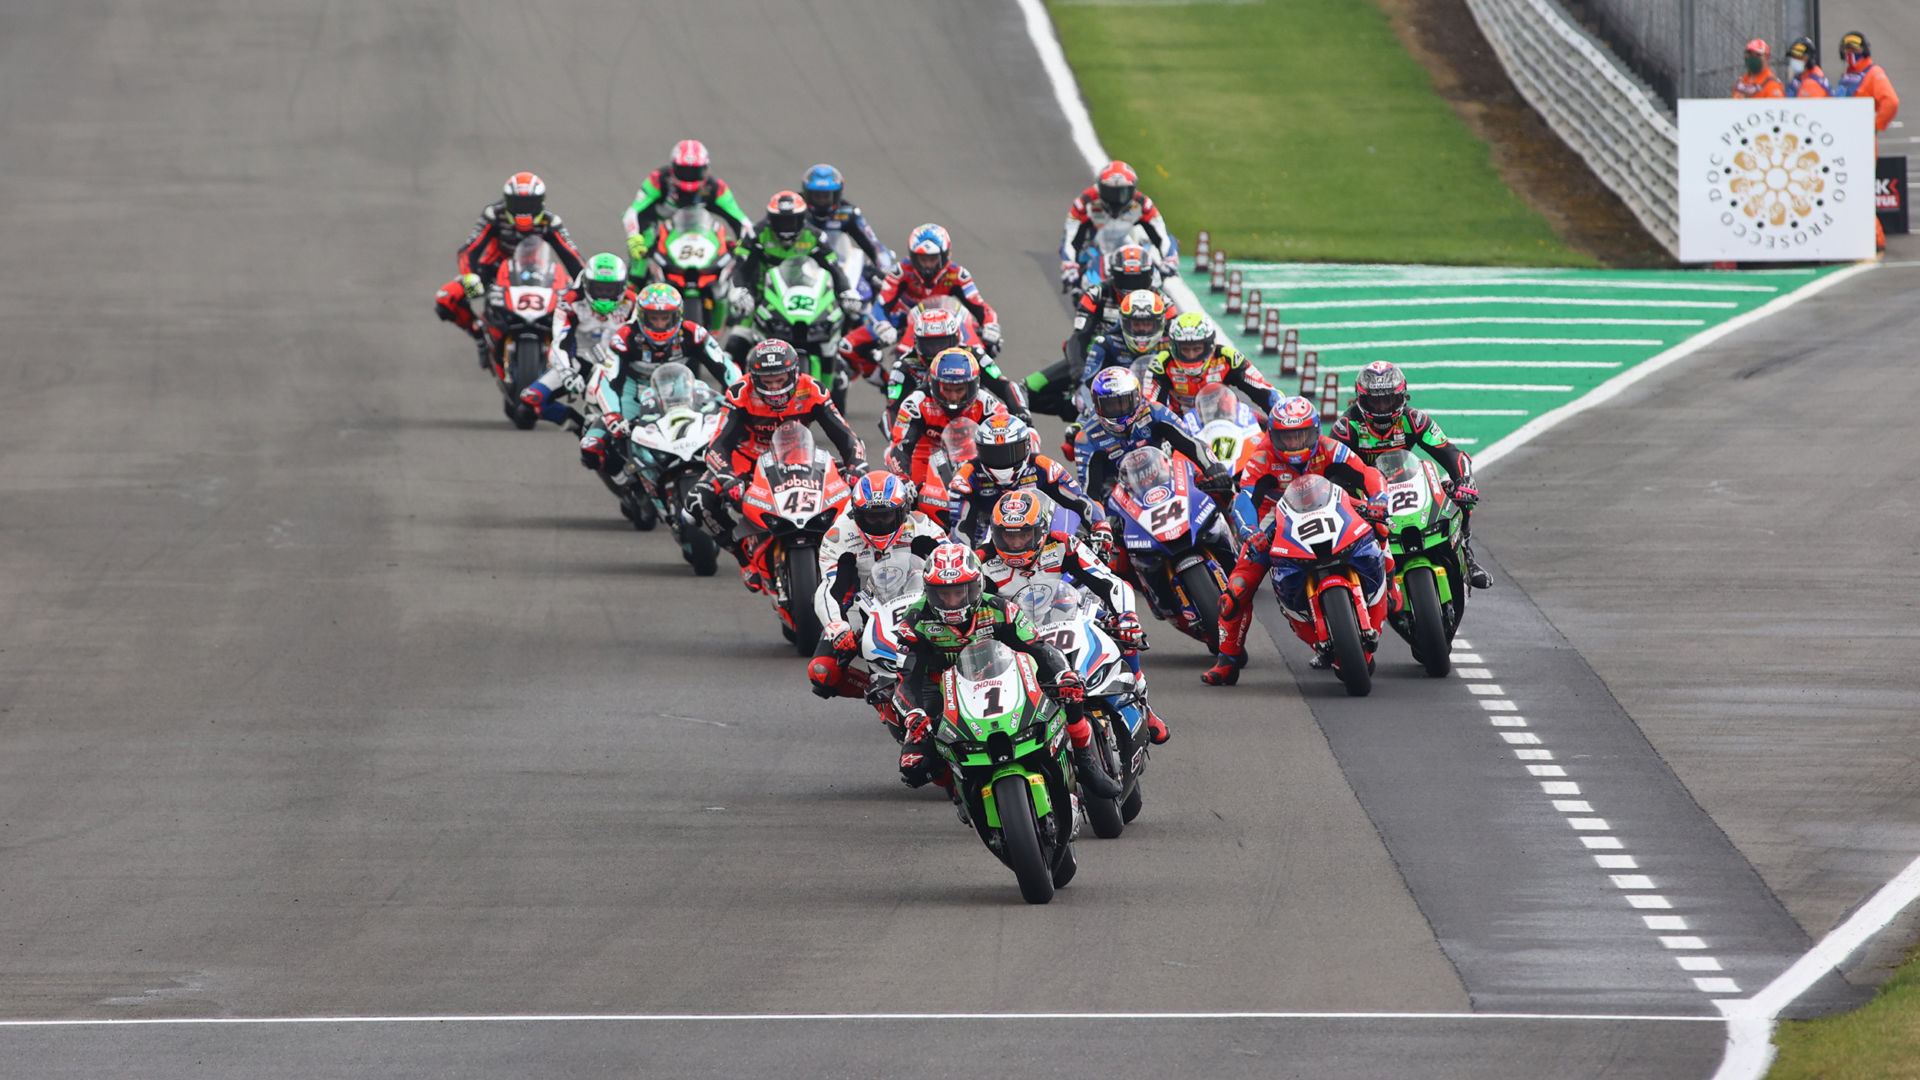 The start of a World Superbike race during Round Four at Donington Park. Photo courtesy Dorna.